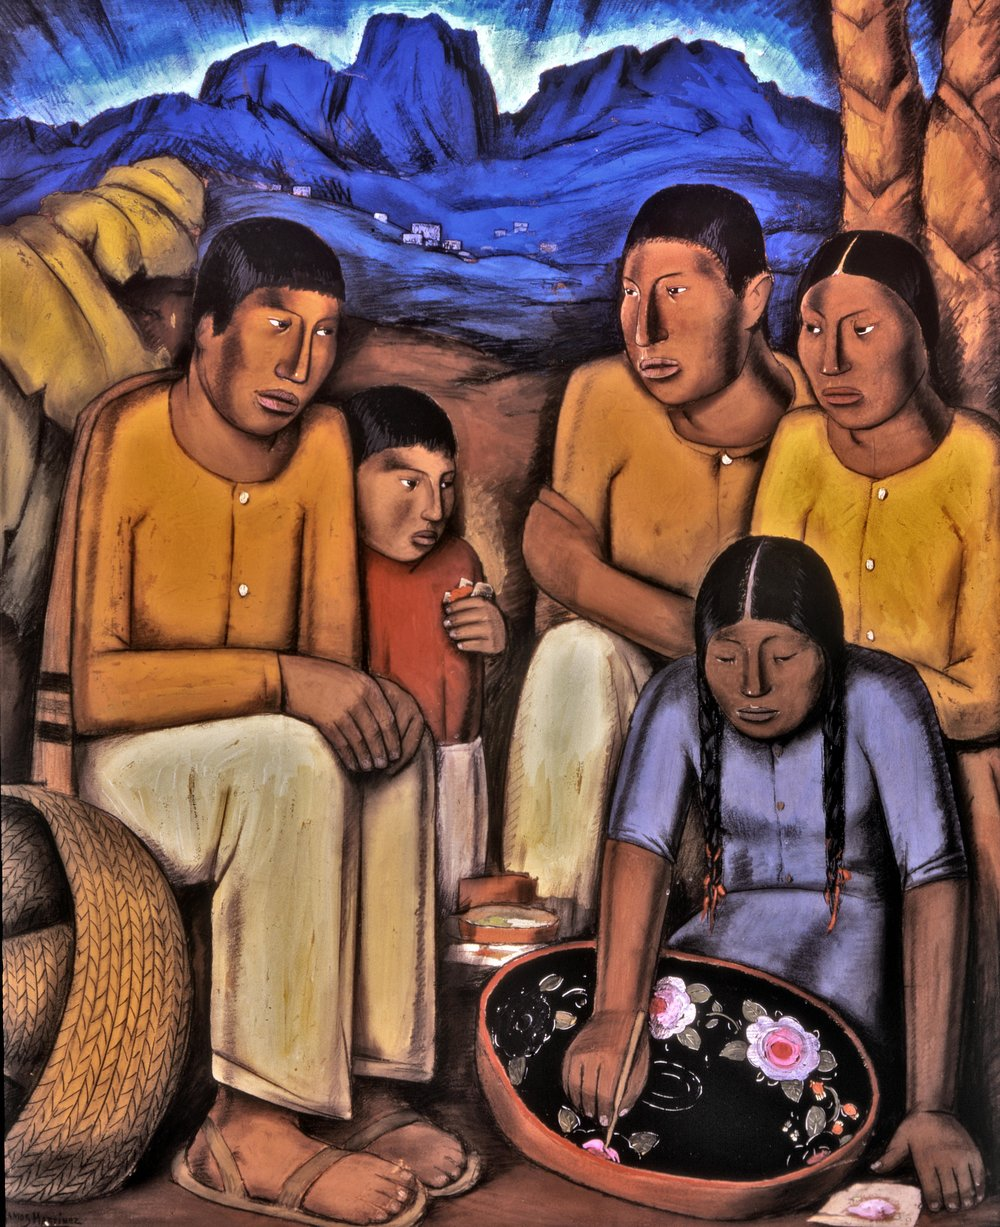 La Pintora de Uruapan / The Painter from Uruapan  ca. 1930 tempera on board / temple sobre tabla 47.5 x 38.8 inches; 120.7 x 98.4 centímetros Private collection